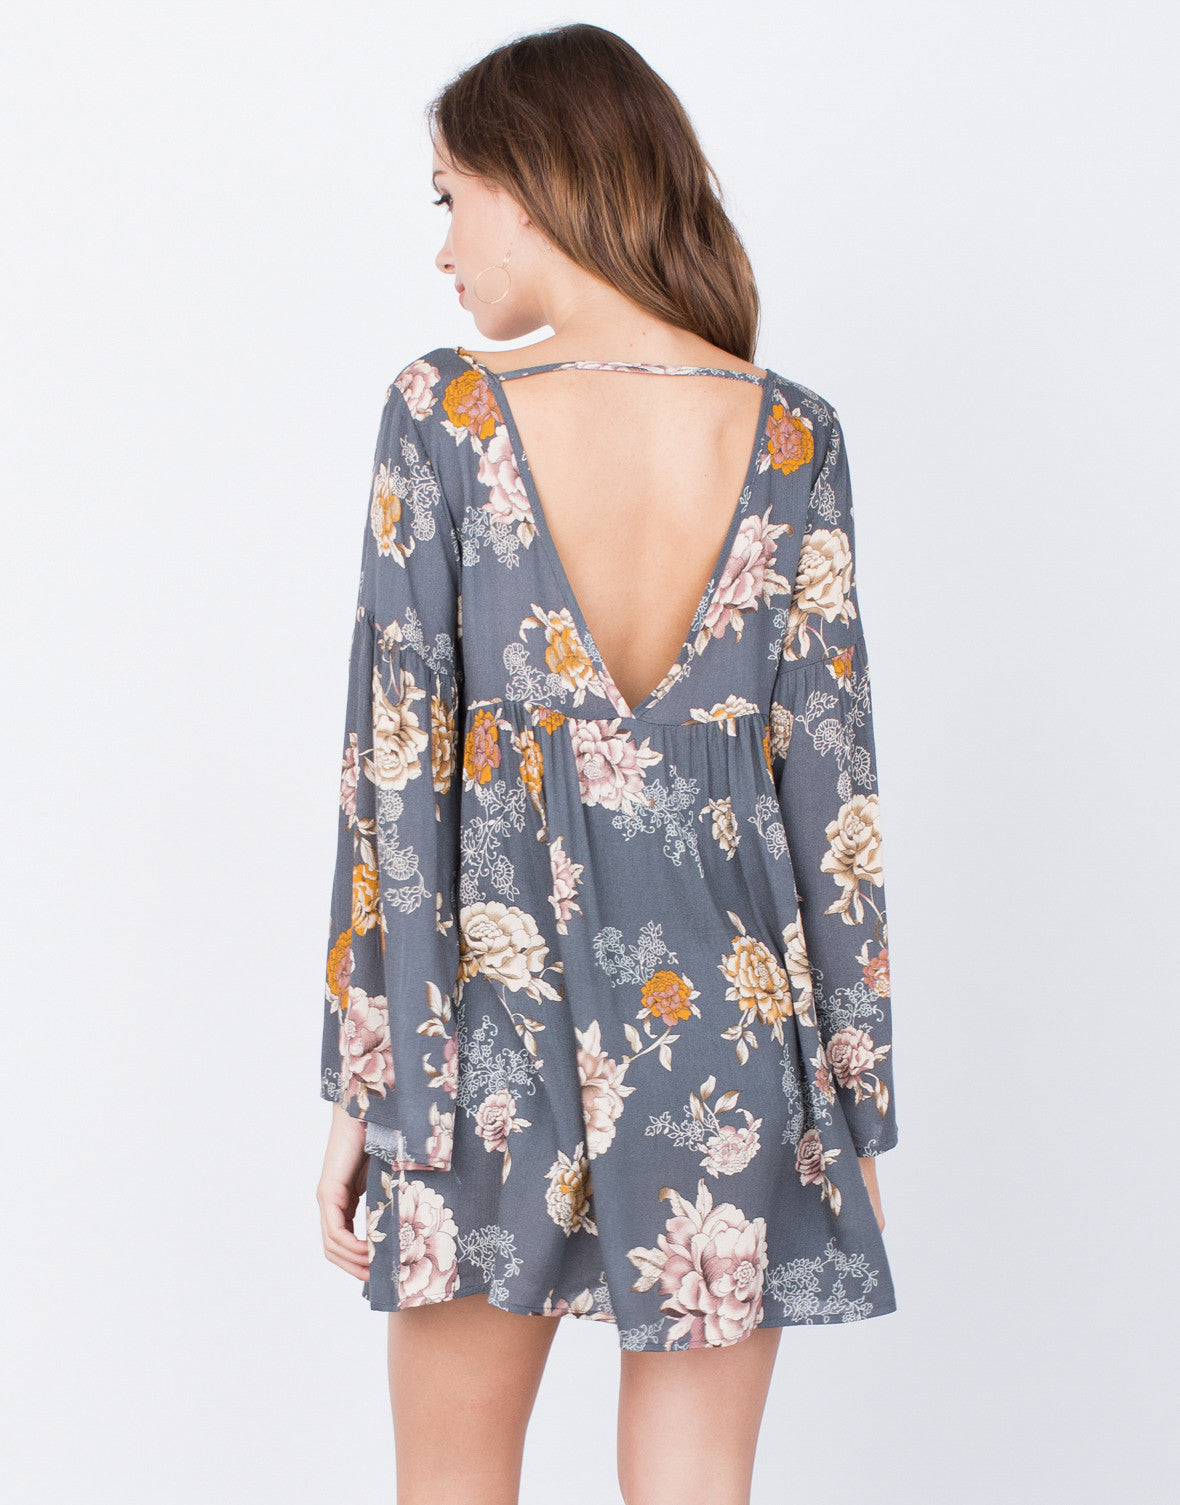 Back View of Autumn Florals Dress